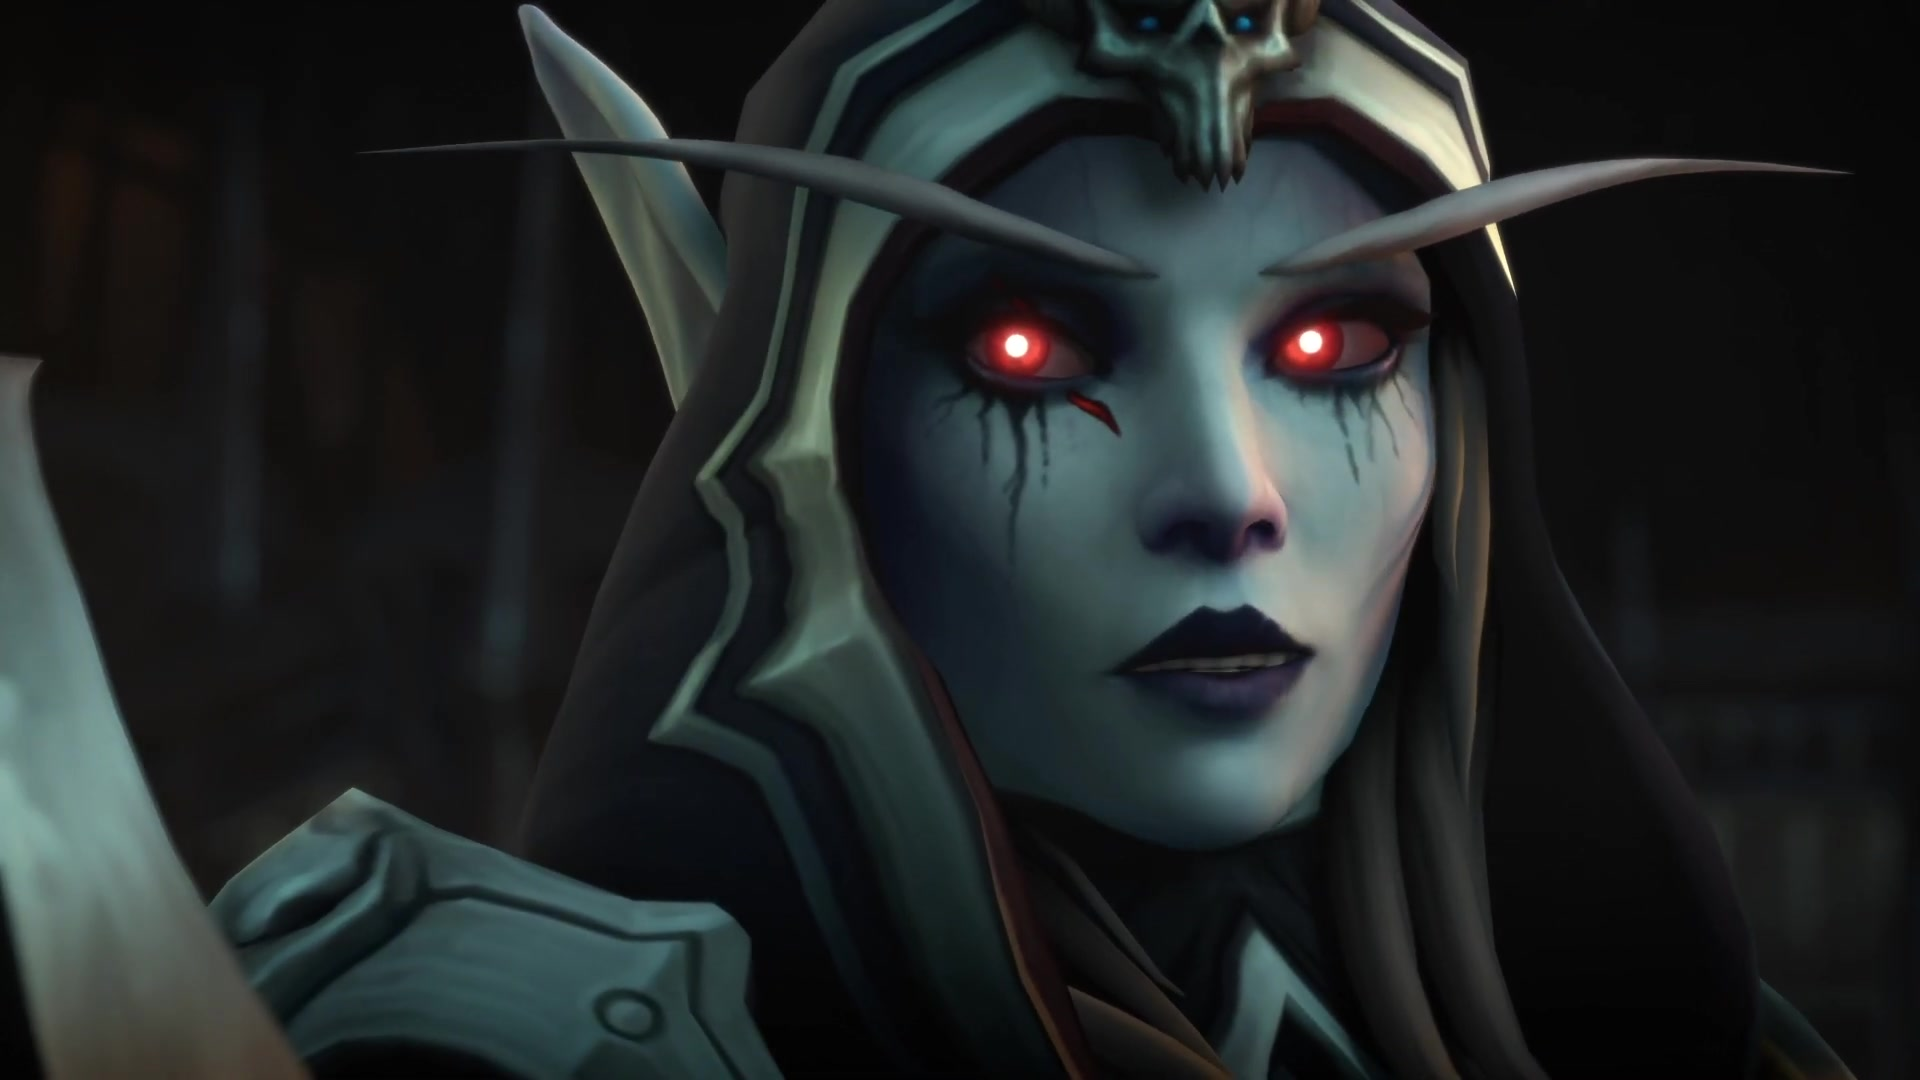 World of Warcraft: Shadowlands - Sylvanas Windrunner, an undead elf with bright red eyes, speaks to a figure off-camera with a hopeful expression.